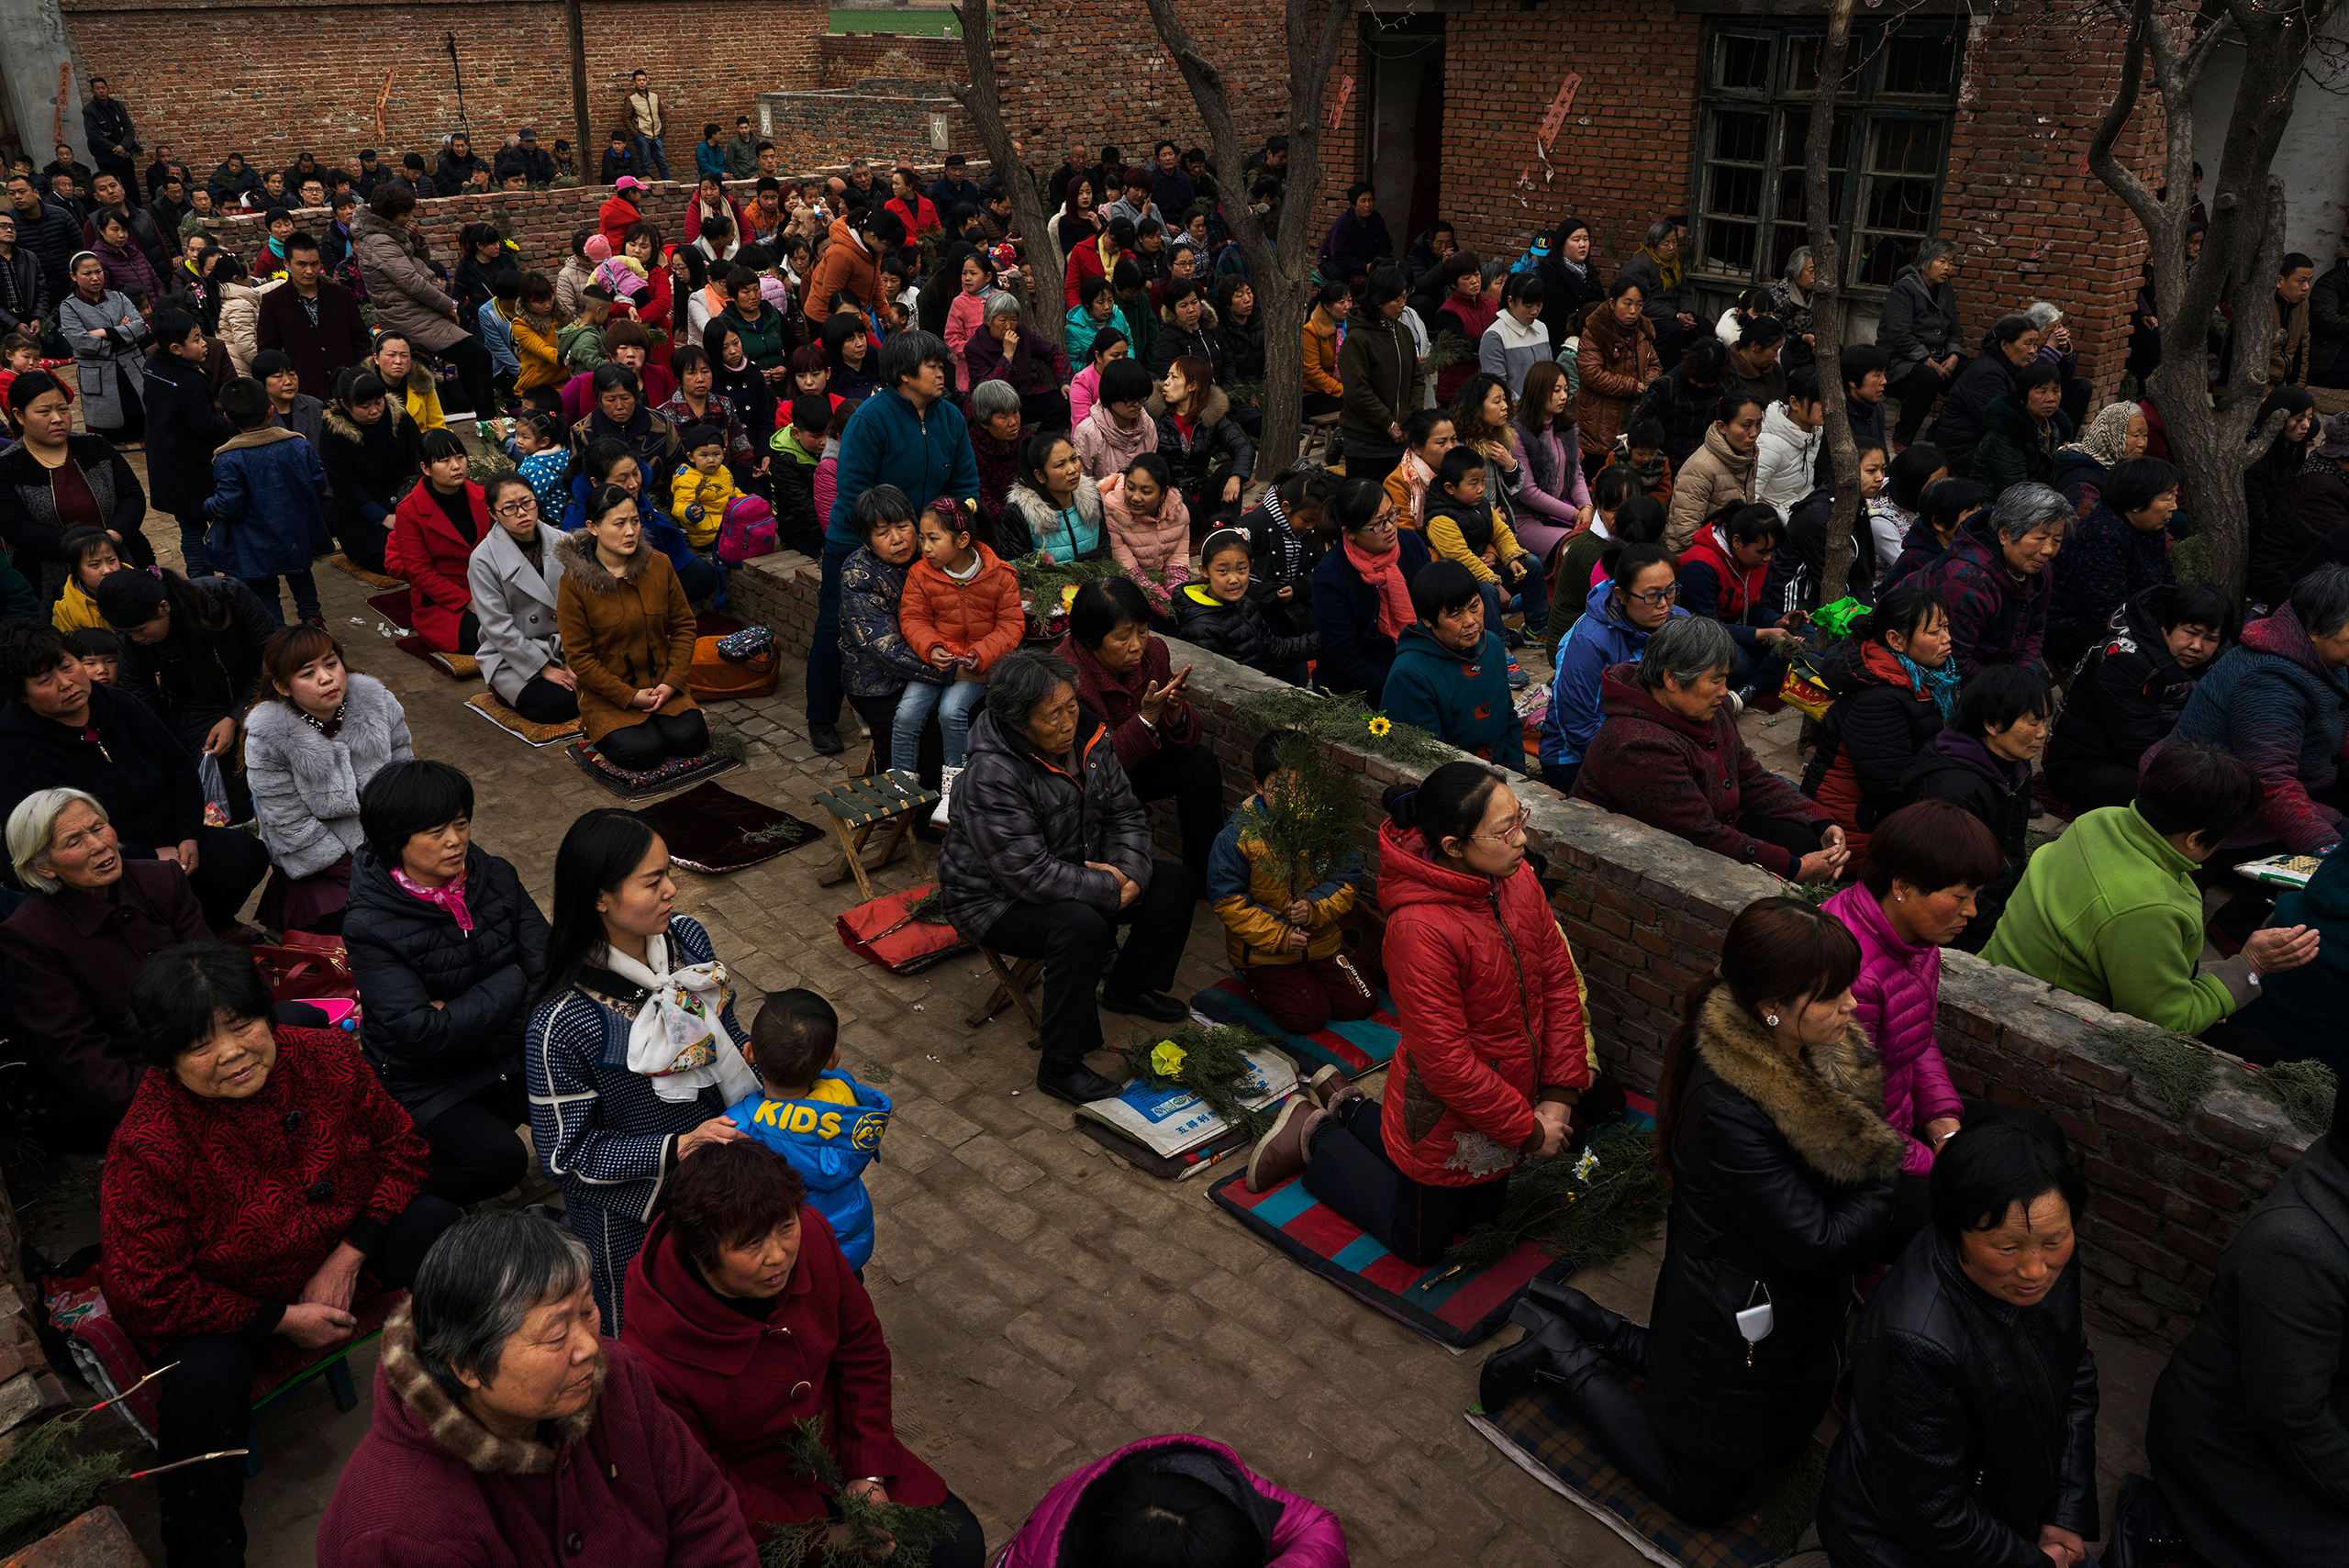 Villagers attend an underground Palm Sunday service in the yard of a rundown house in Youtong village, Shijiazhuang, China, March 20, 2016.